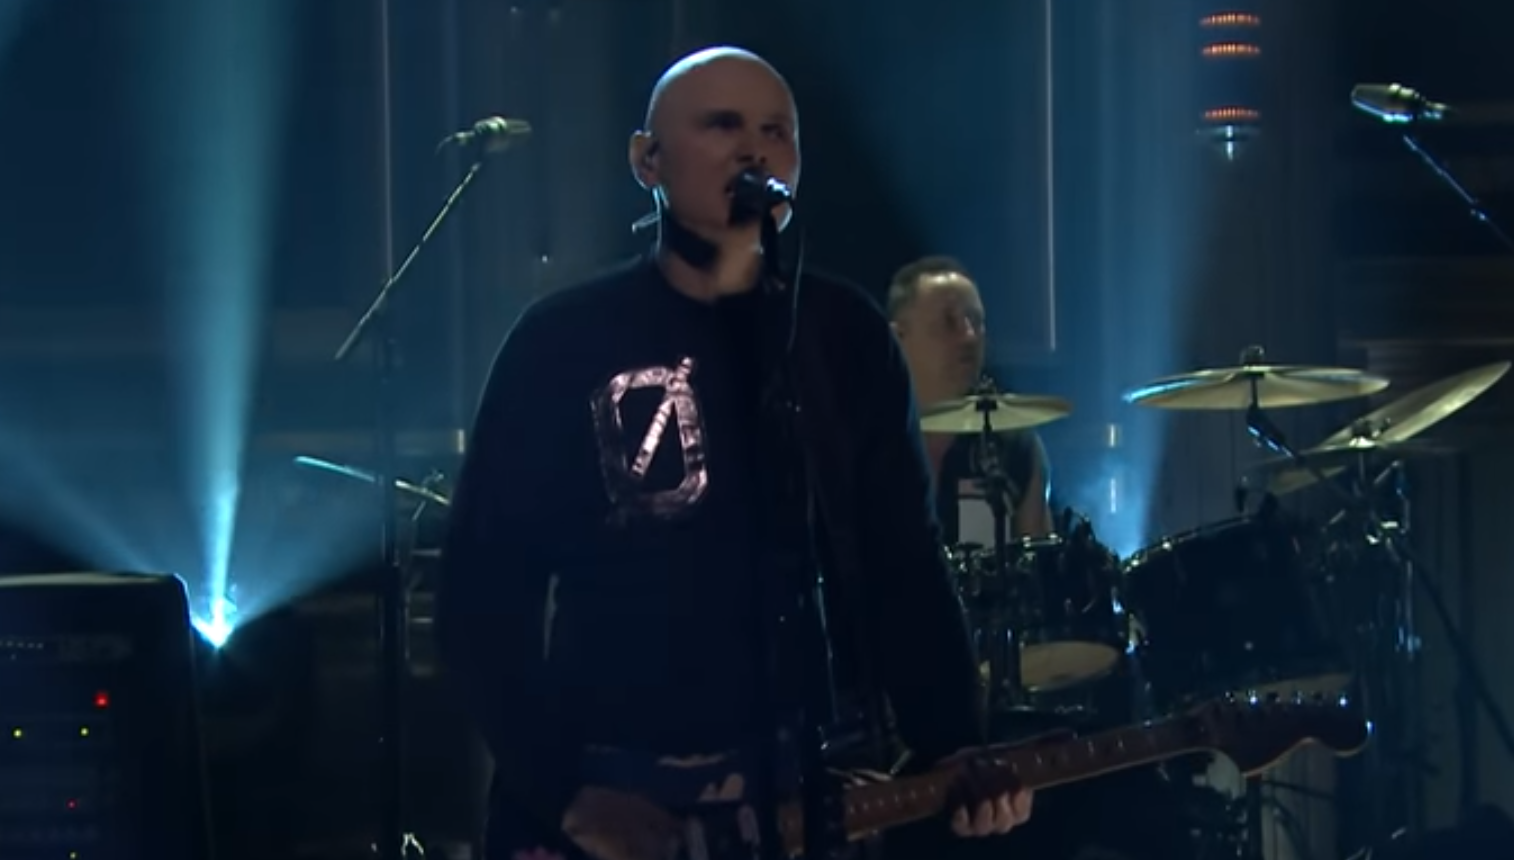 Smashing Pumpkins play new song on 'Tonight Show'